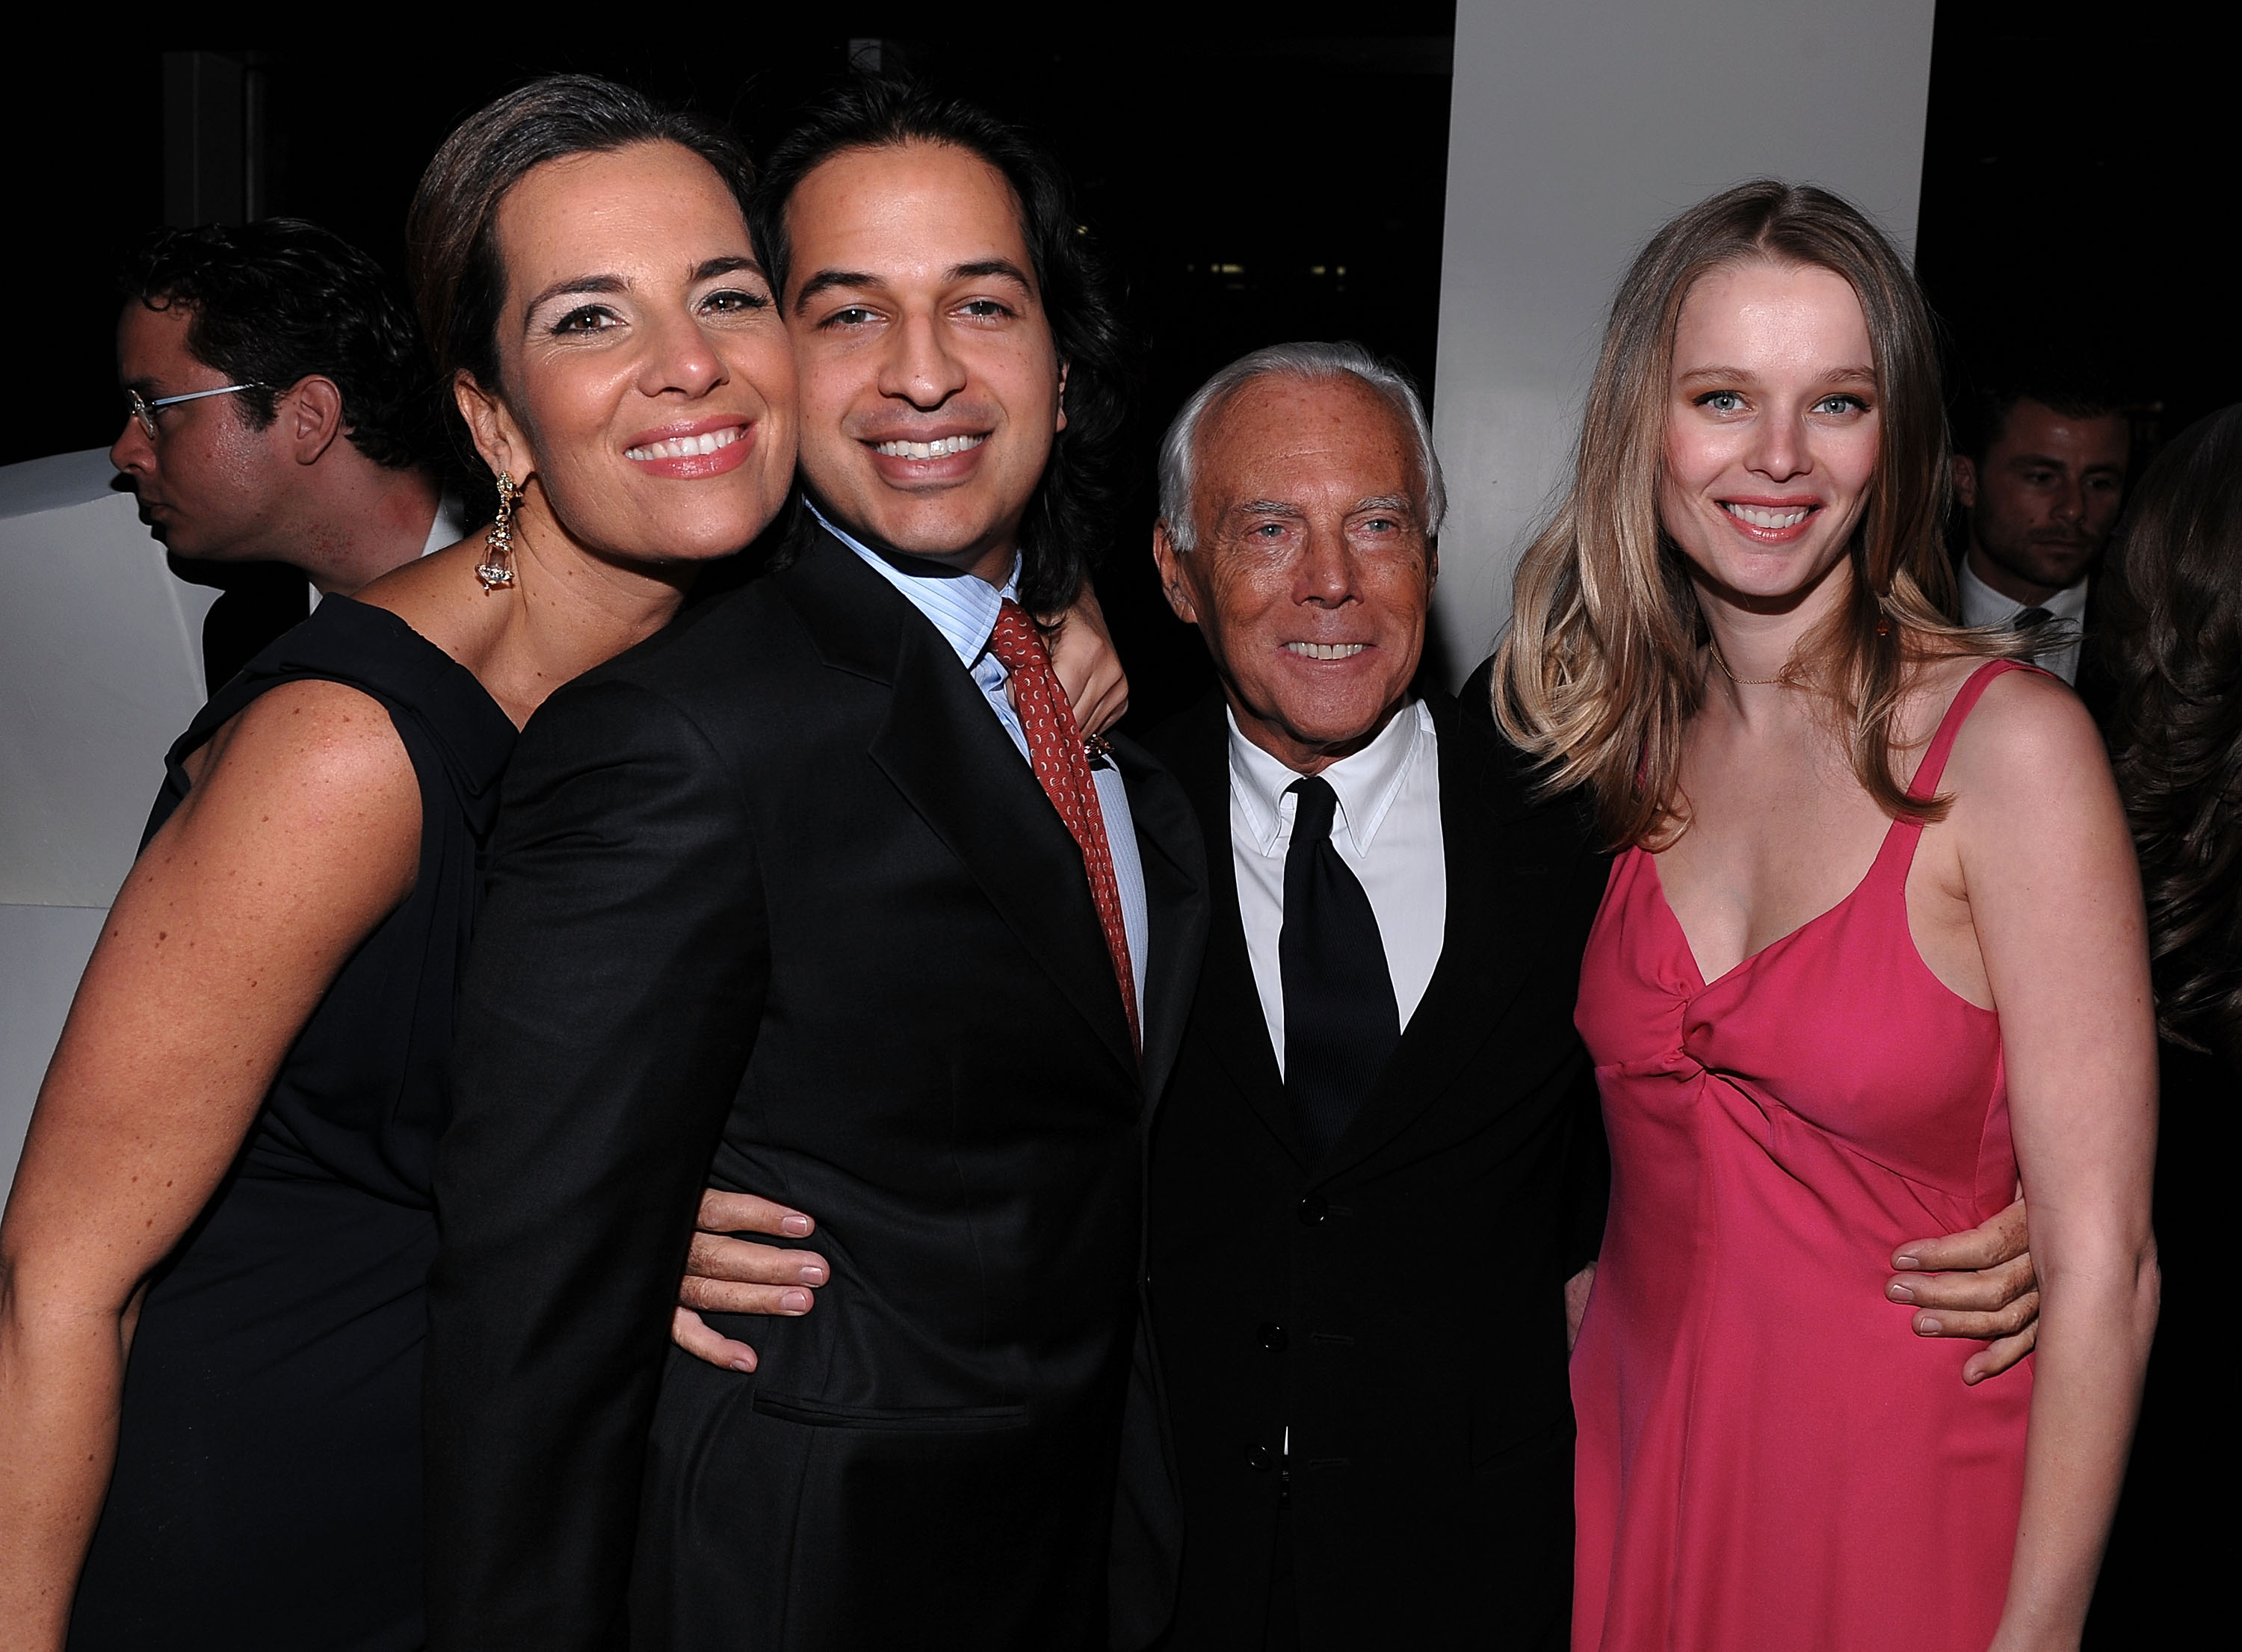 Amanat (2nd from left ) in 2009 with Giorgio Armani, Amanat's then-wife Helena Houdova (right), and Armani's niece Roberta Armani.